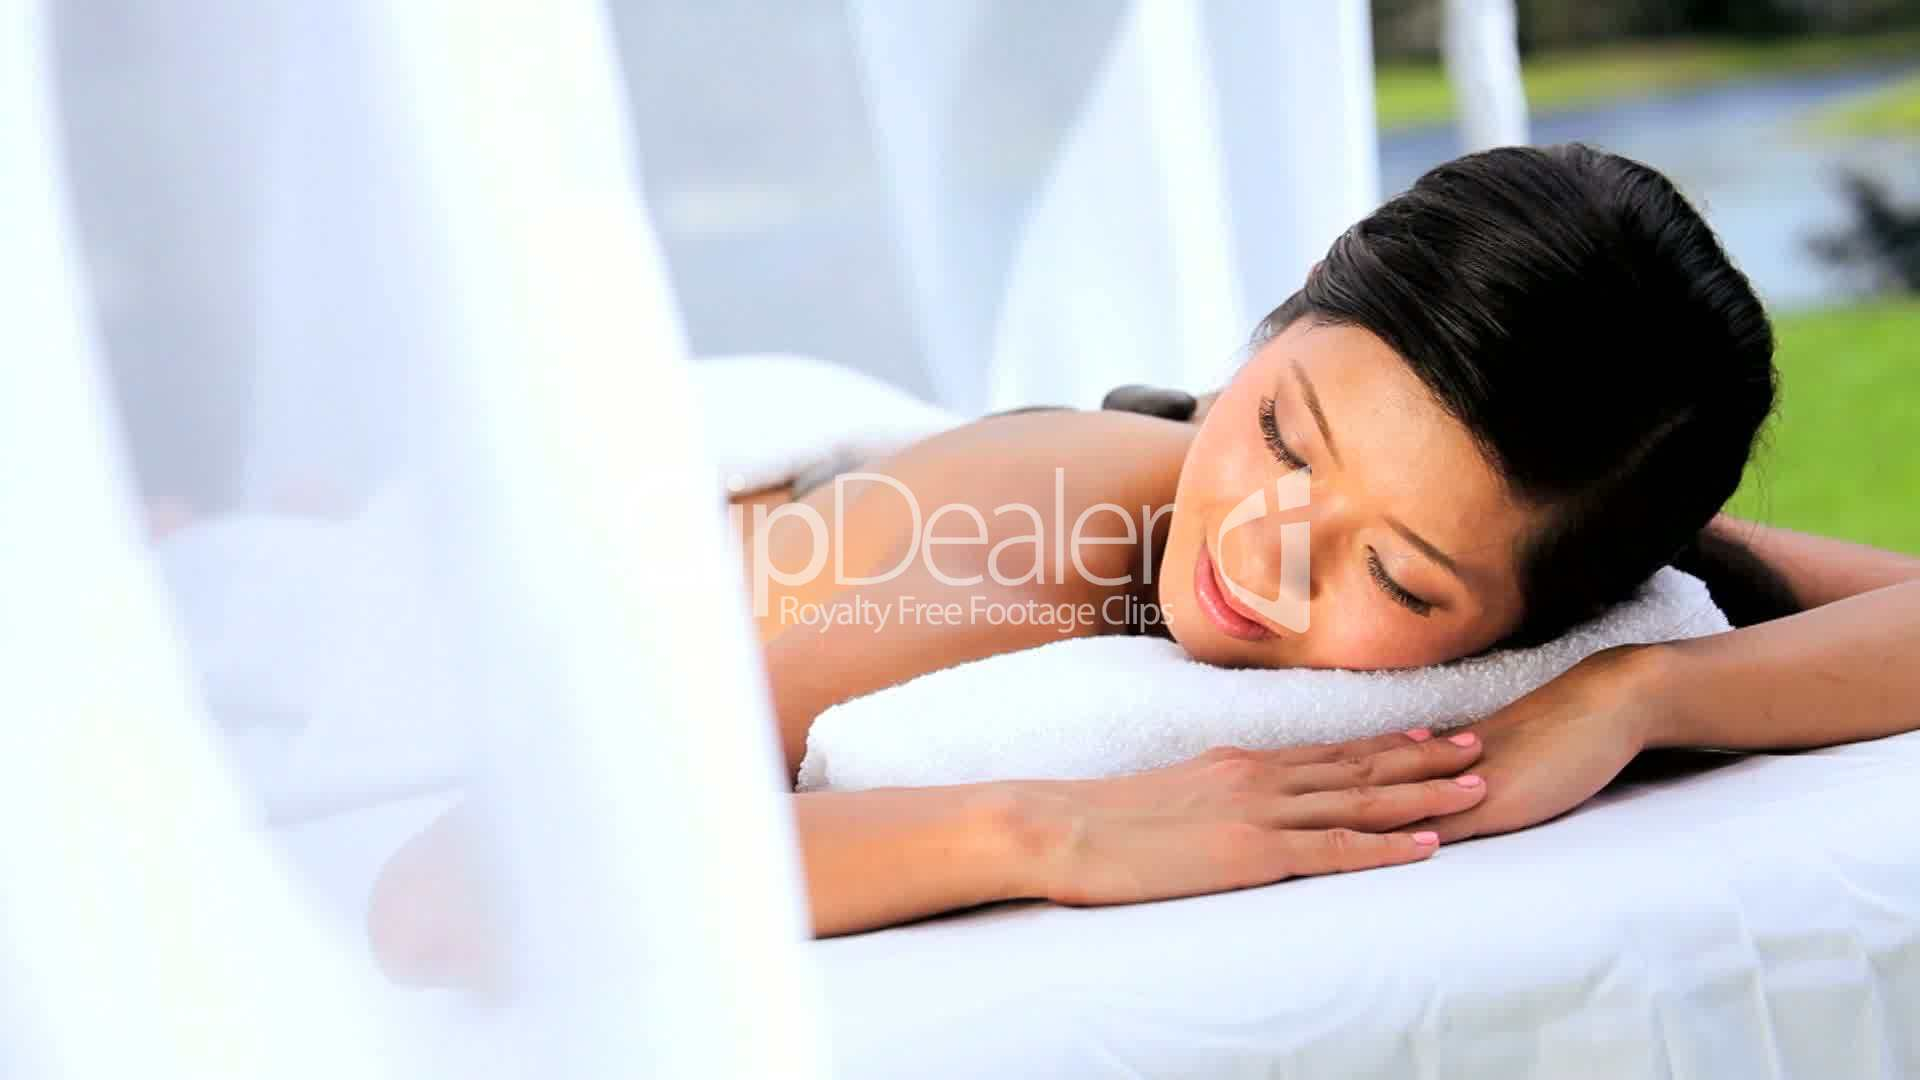 Asian Girl Relaxing with Hot Stone Massage Royaltyfree video and stock footage